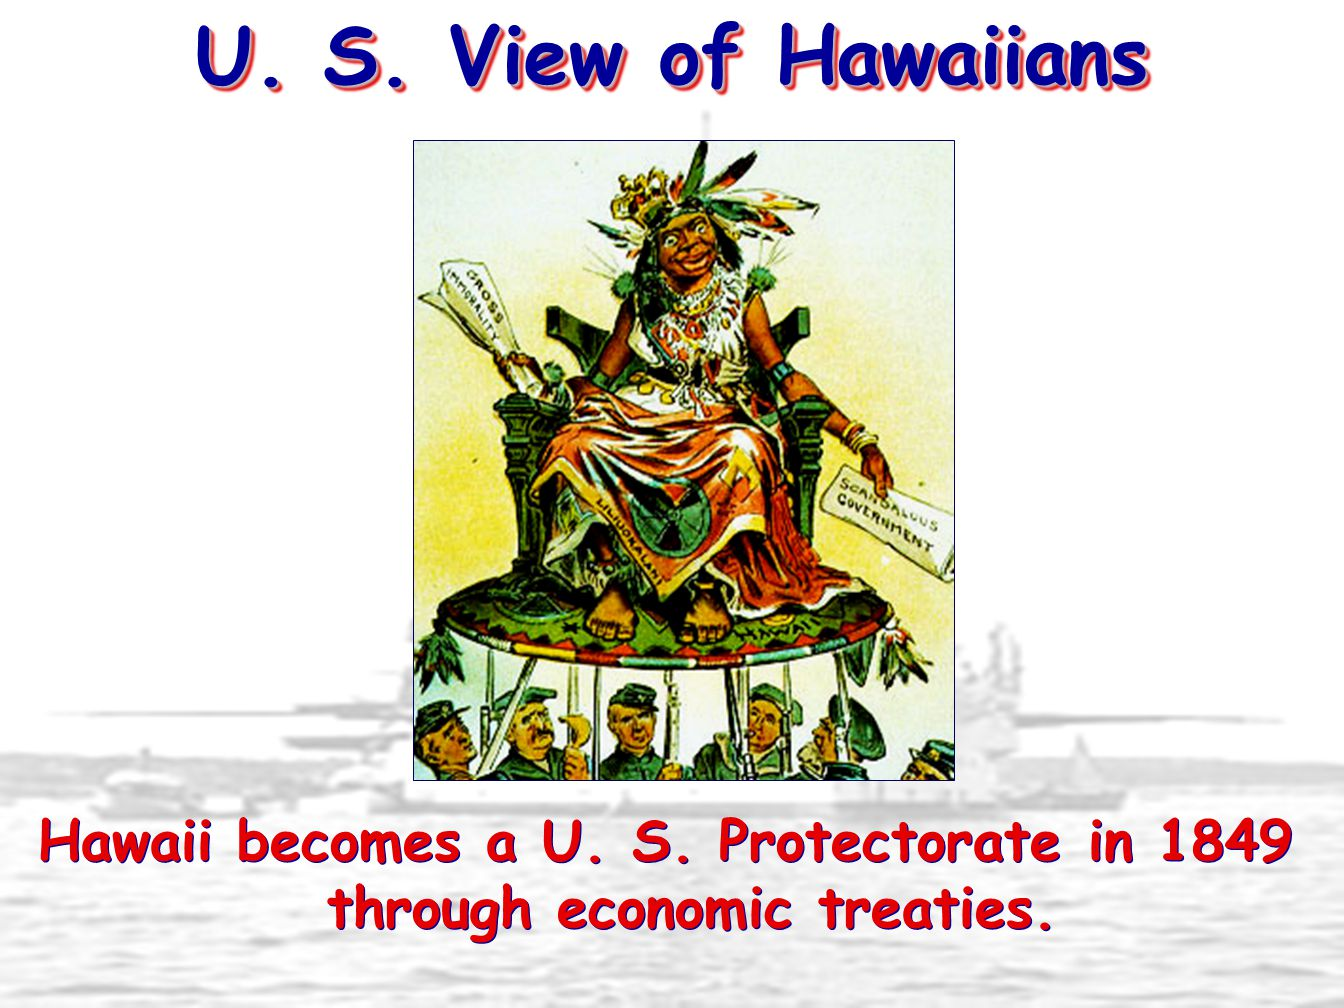 Hawaii becomes a U. S. Protectorate in 1849 through economic treaties.